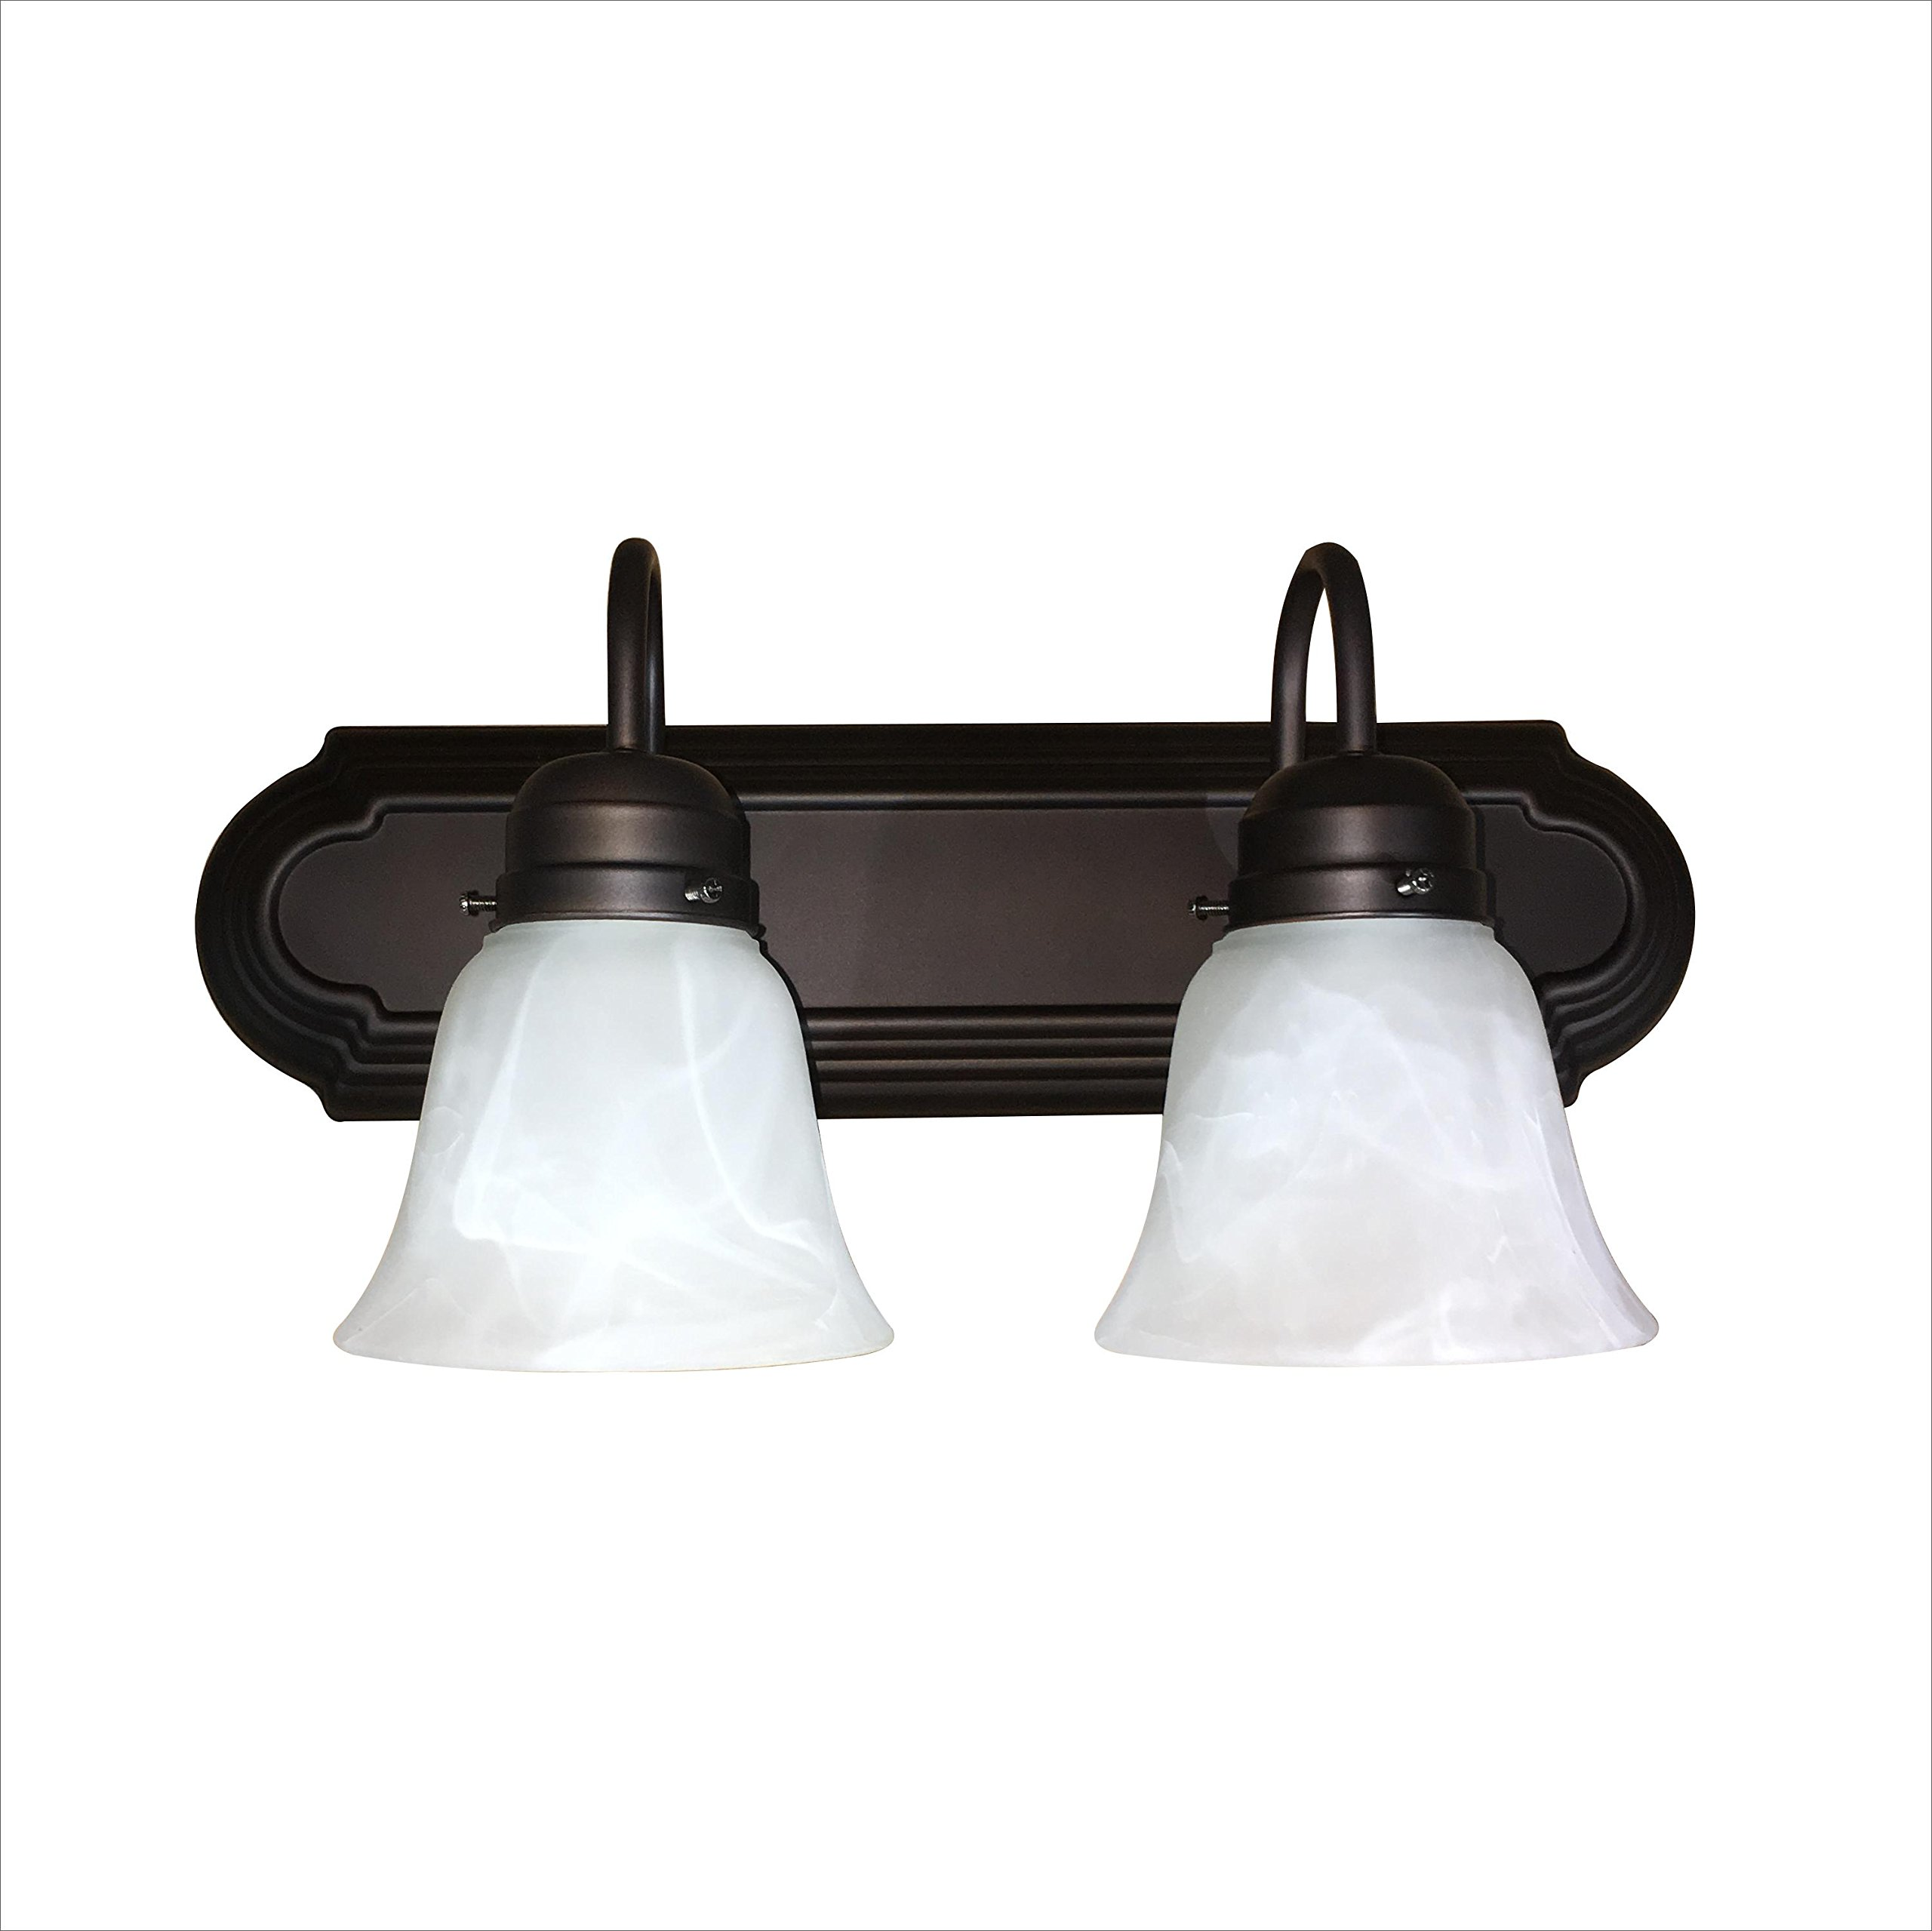 Y Decor L4992-2ORB Monica 1-Light Bathroom Vanity Light In Oil Rubbed Bronze by Y Decor